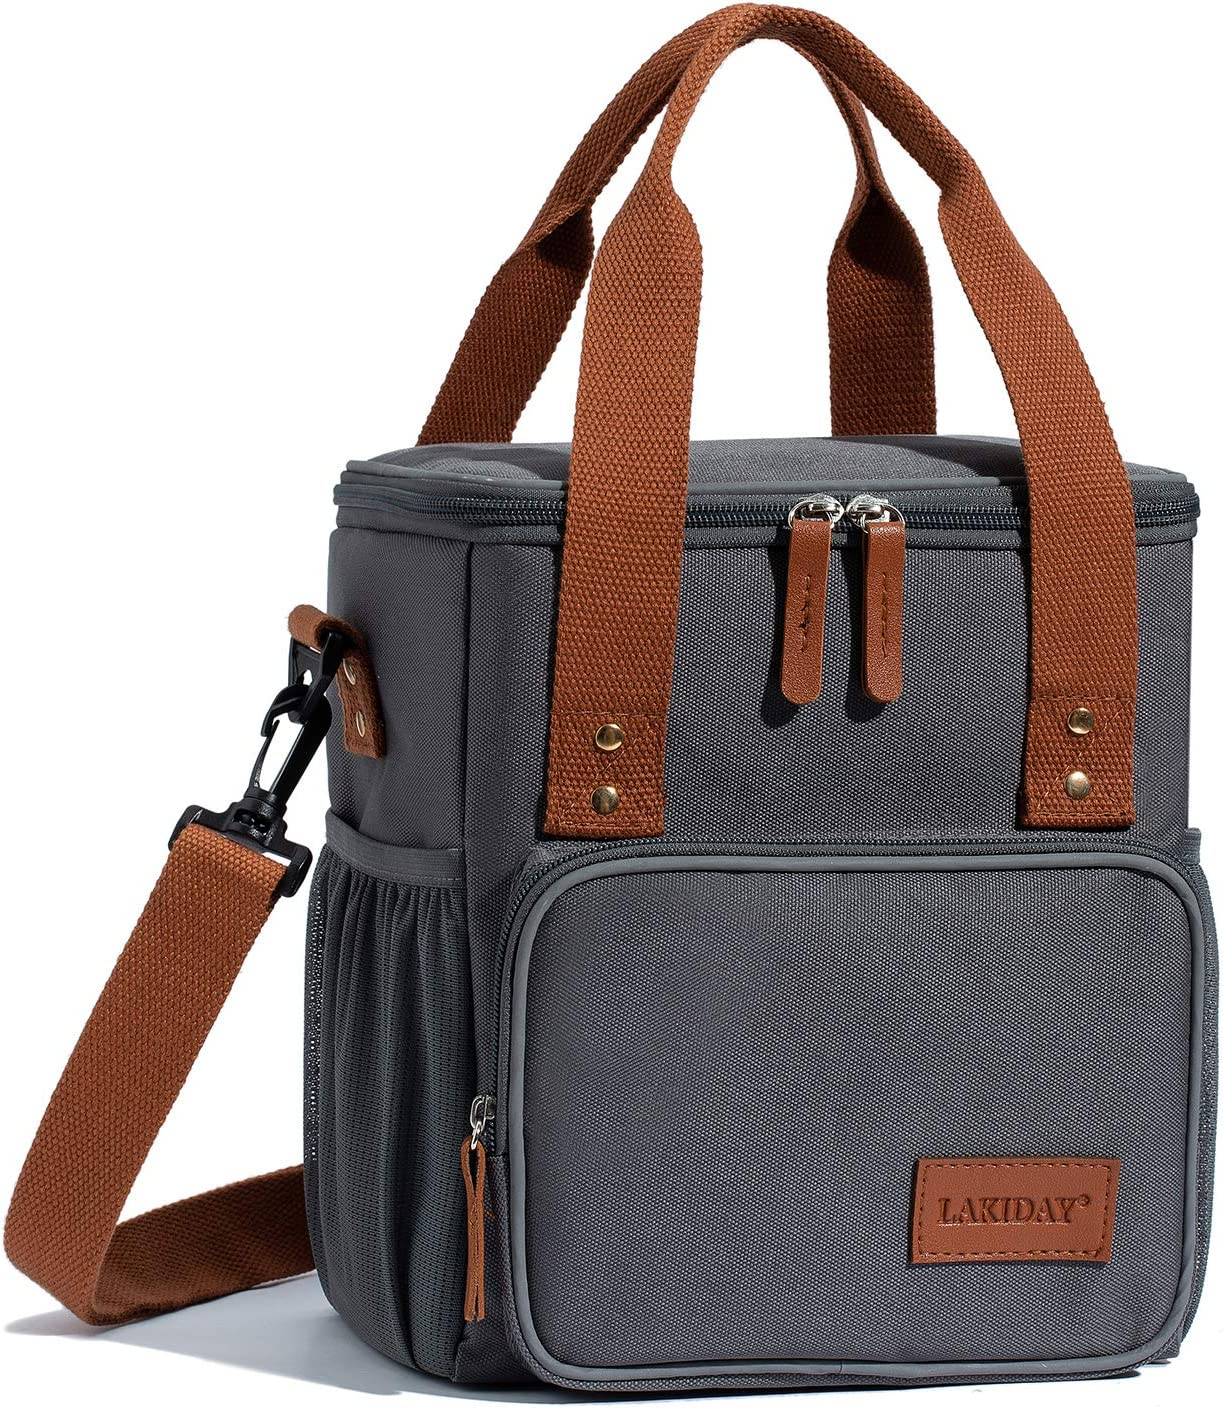 LAKIDAY Insulated Lunch Bag for Women/Men/Kids Reusable Lunch Tote Box Container with Adjustable Shoulder Strap Leakproof for Work/Picnic/Hiking/Beach/Fishing(Dark Gray-2)